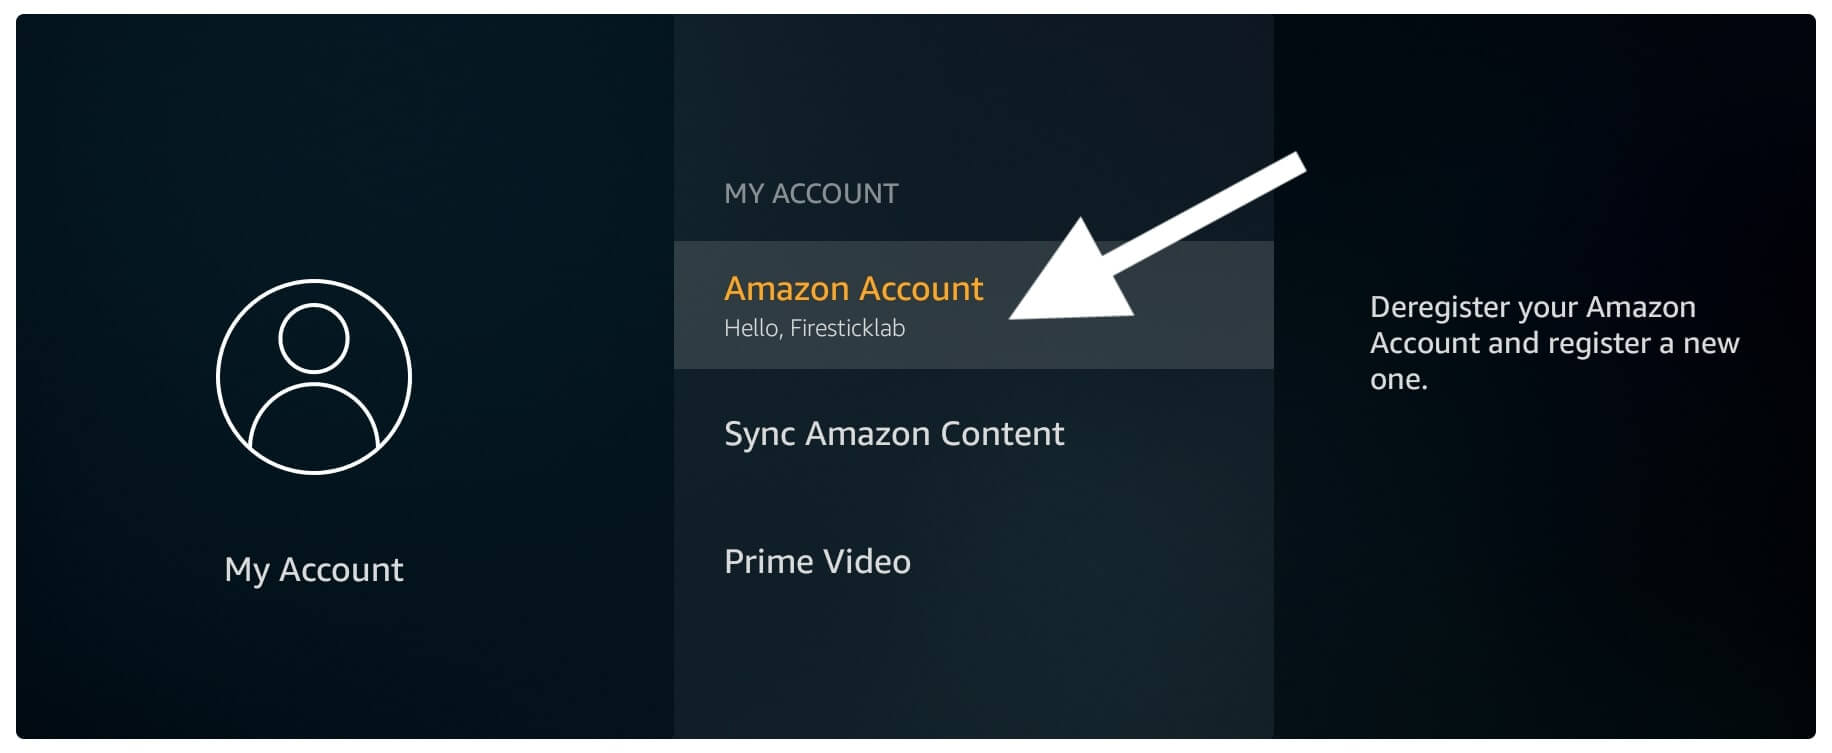 Register-Amazon-Account-On-Firestick